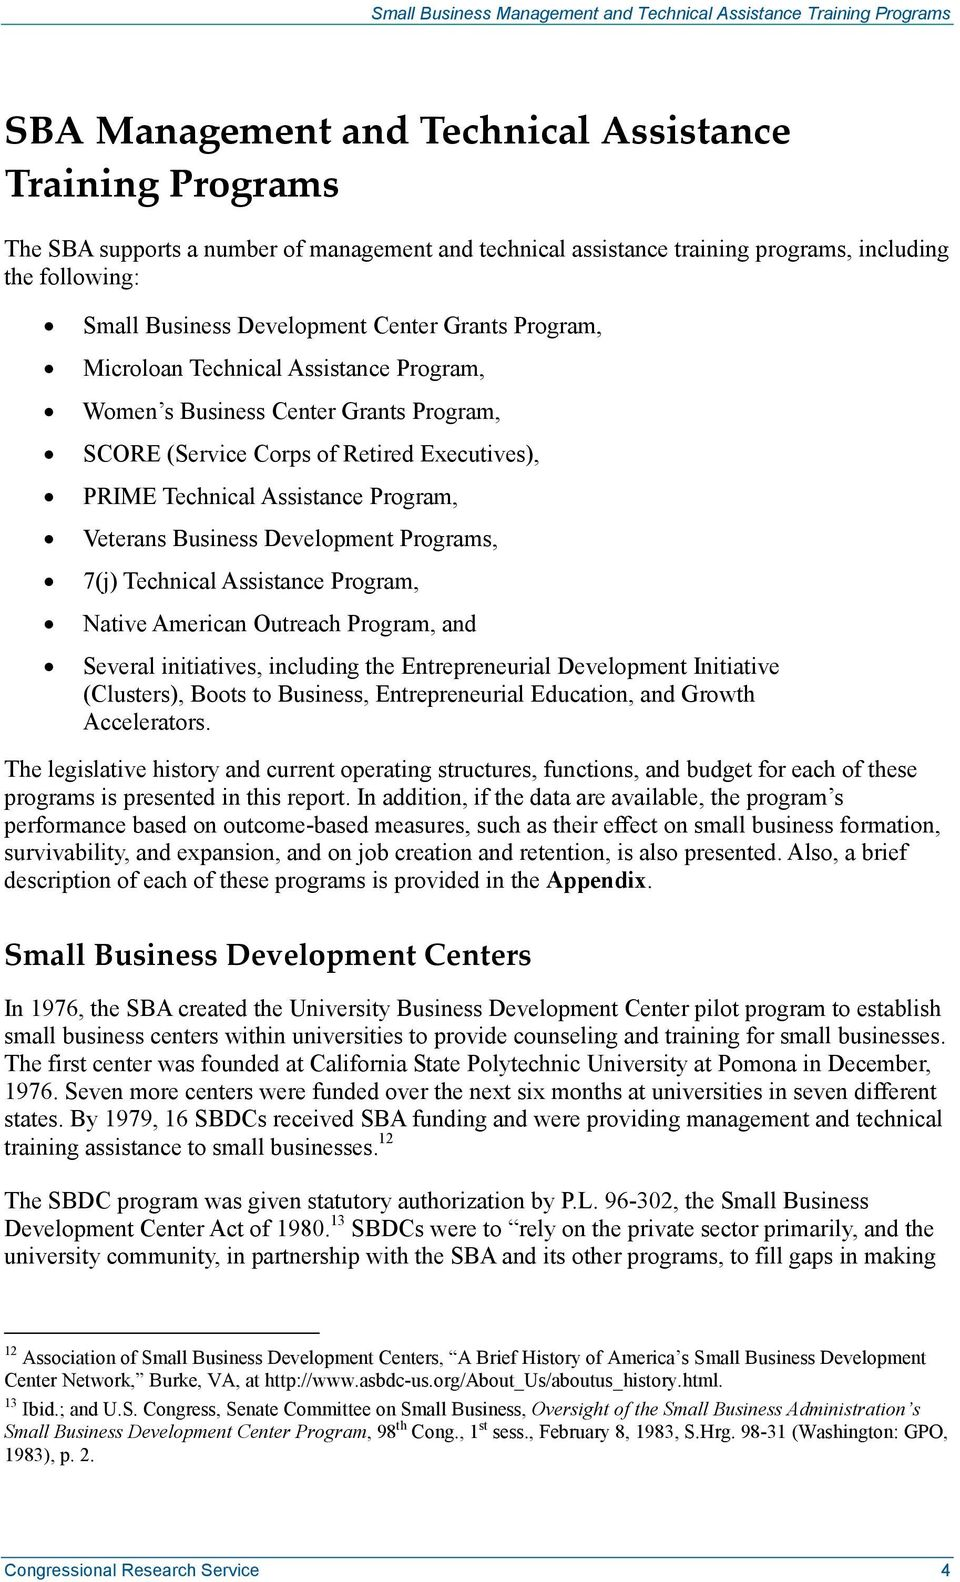 Business Development Programs, 7(j) Technical Assistance Program, Native American Outreach Program, and Several initiatives, including the Entrepreneurial Development Initiative (Clusters), Boots to